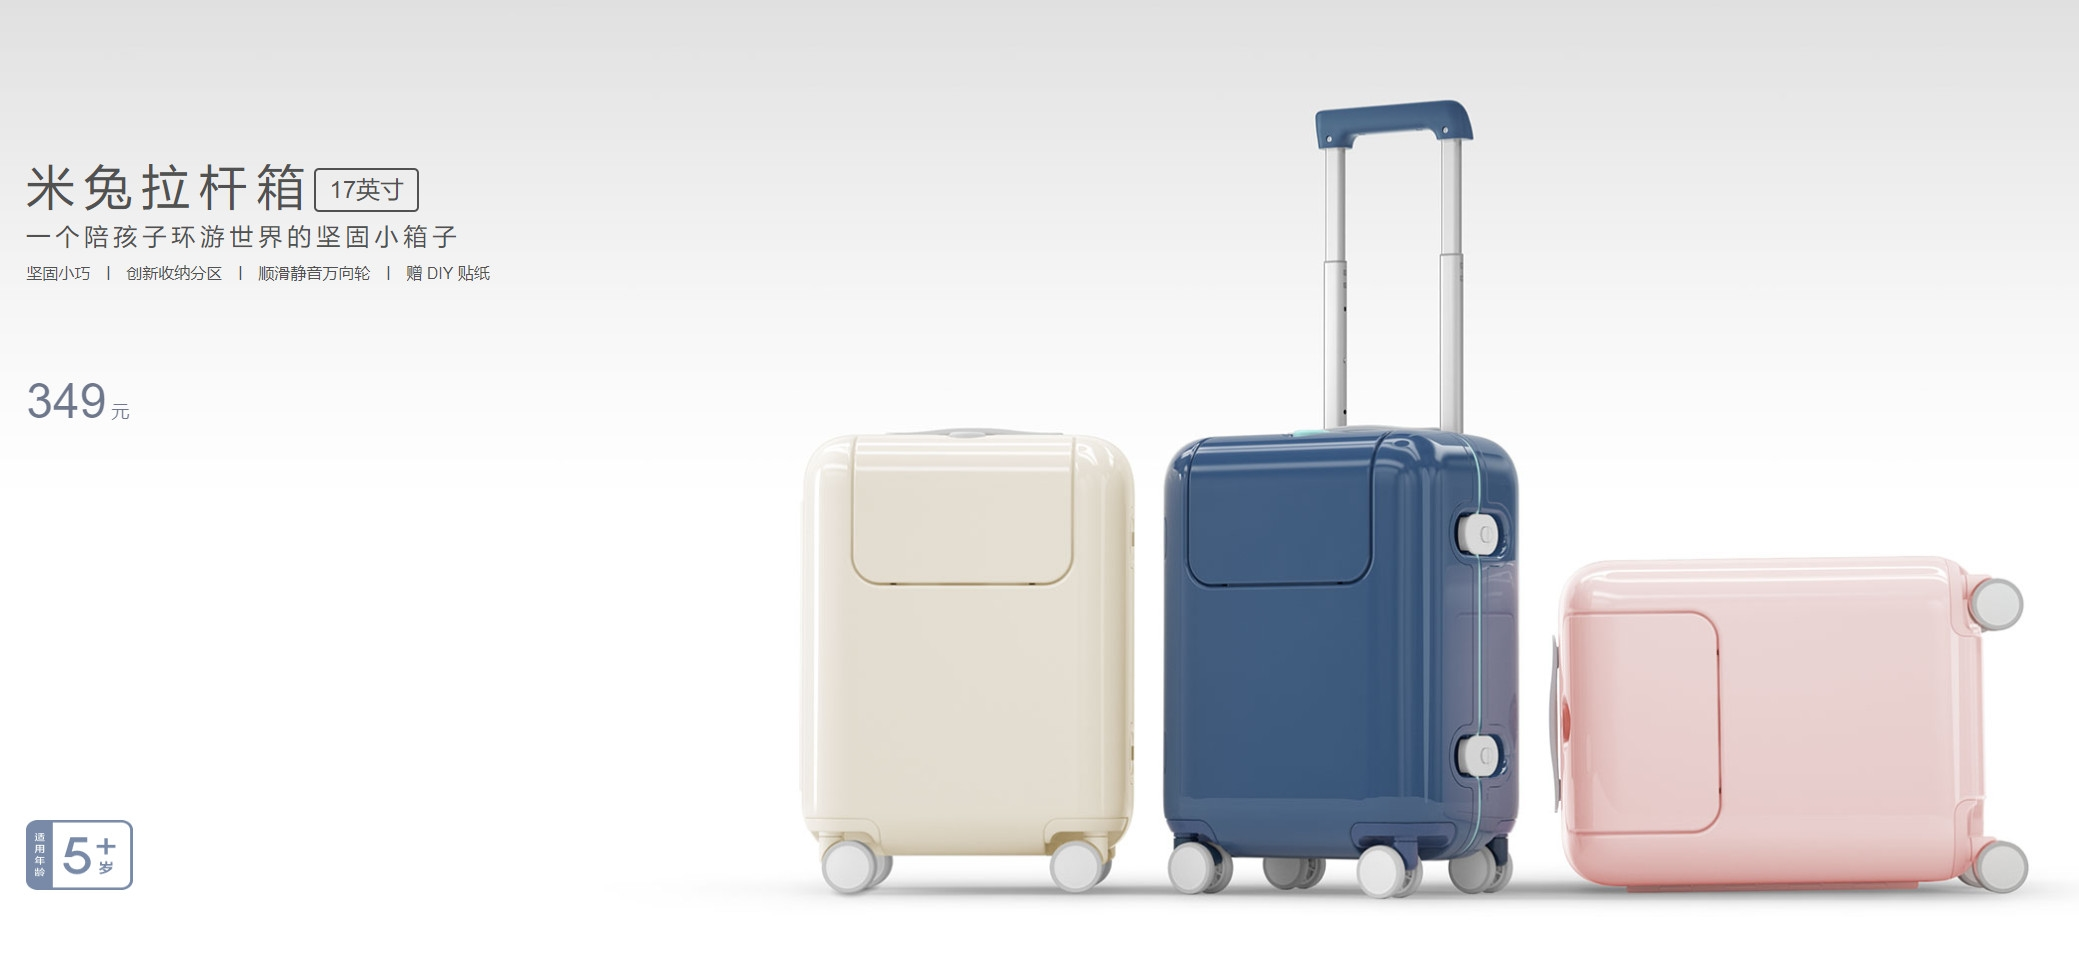 The new Xiaomi Mi Bunny Trolley child's suitcase was launched